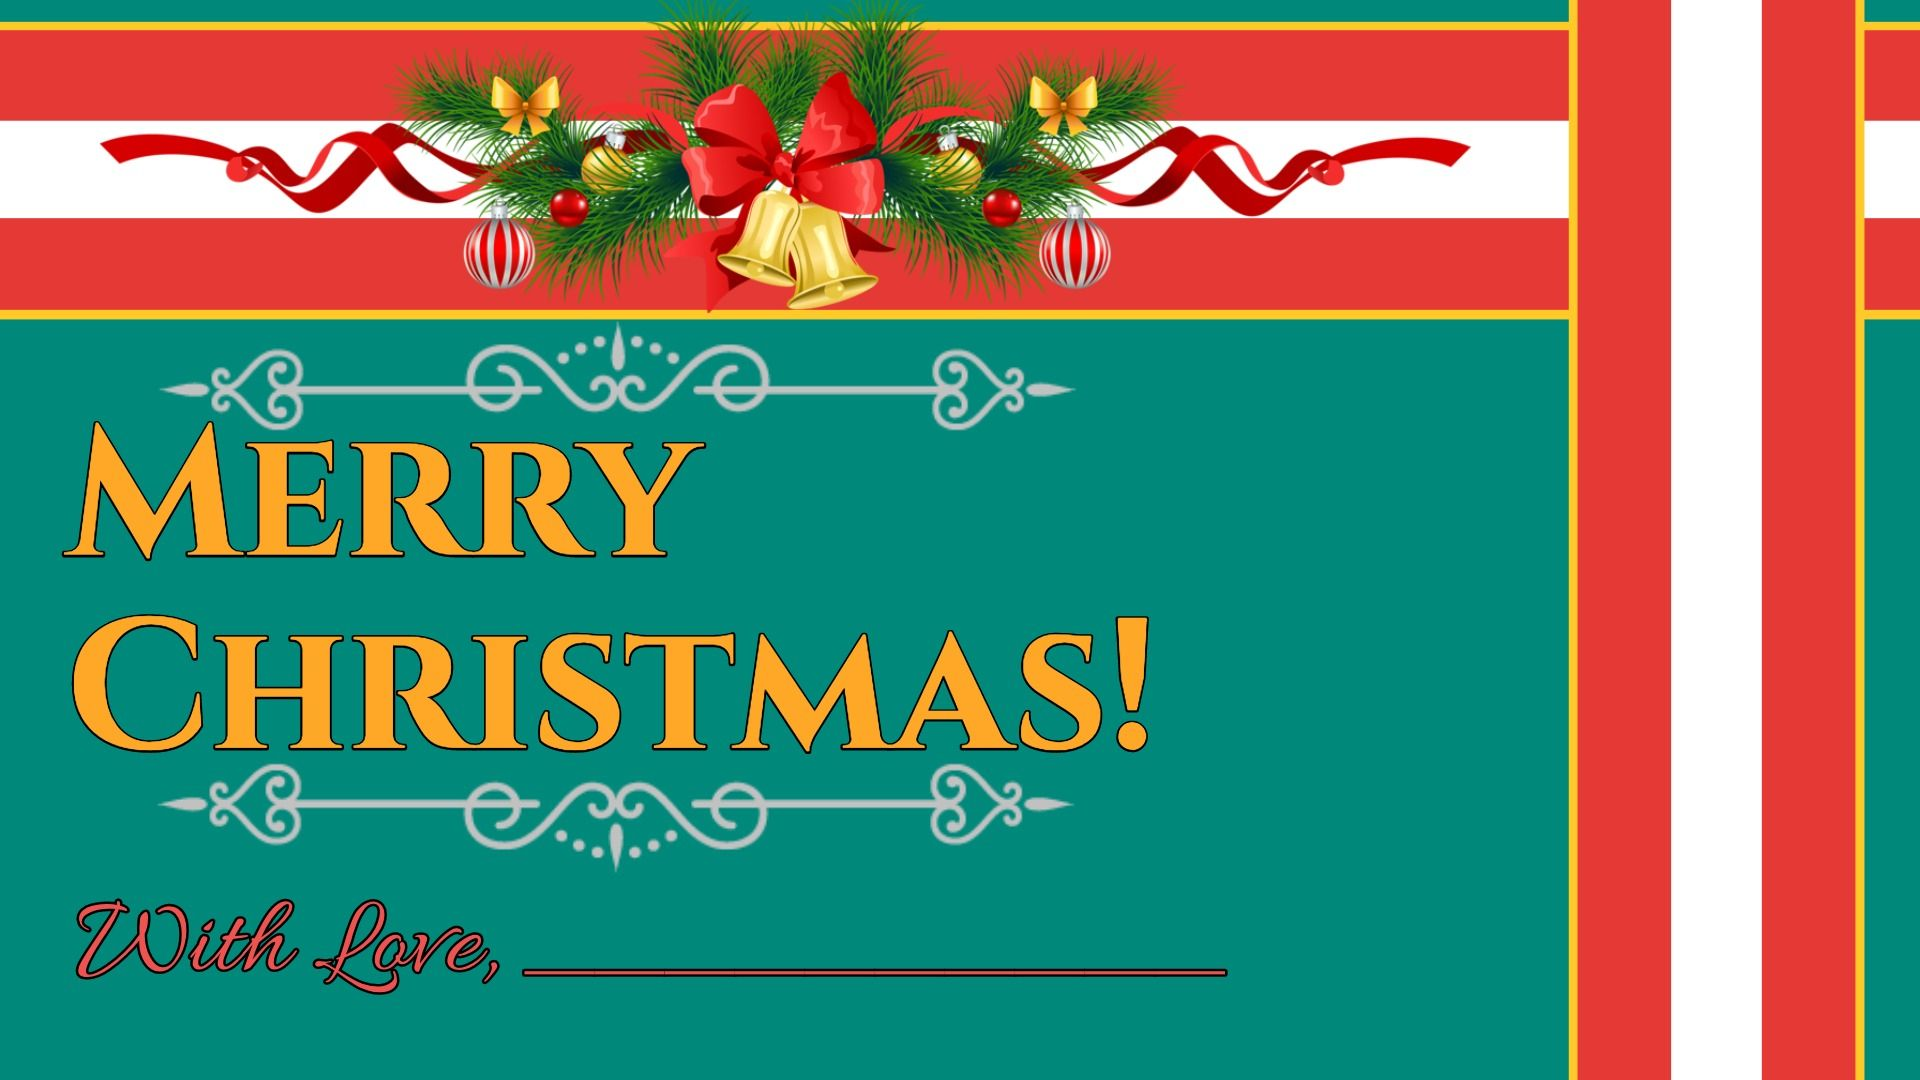 The Extraordinary Christmas Card Template Within Happy Holidays Card Template Picture Below Holiday Card Template Christmas Card Template Happy Holiday Cards